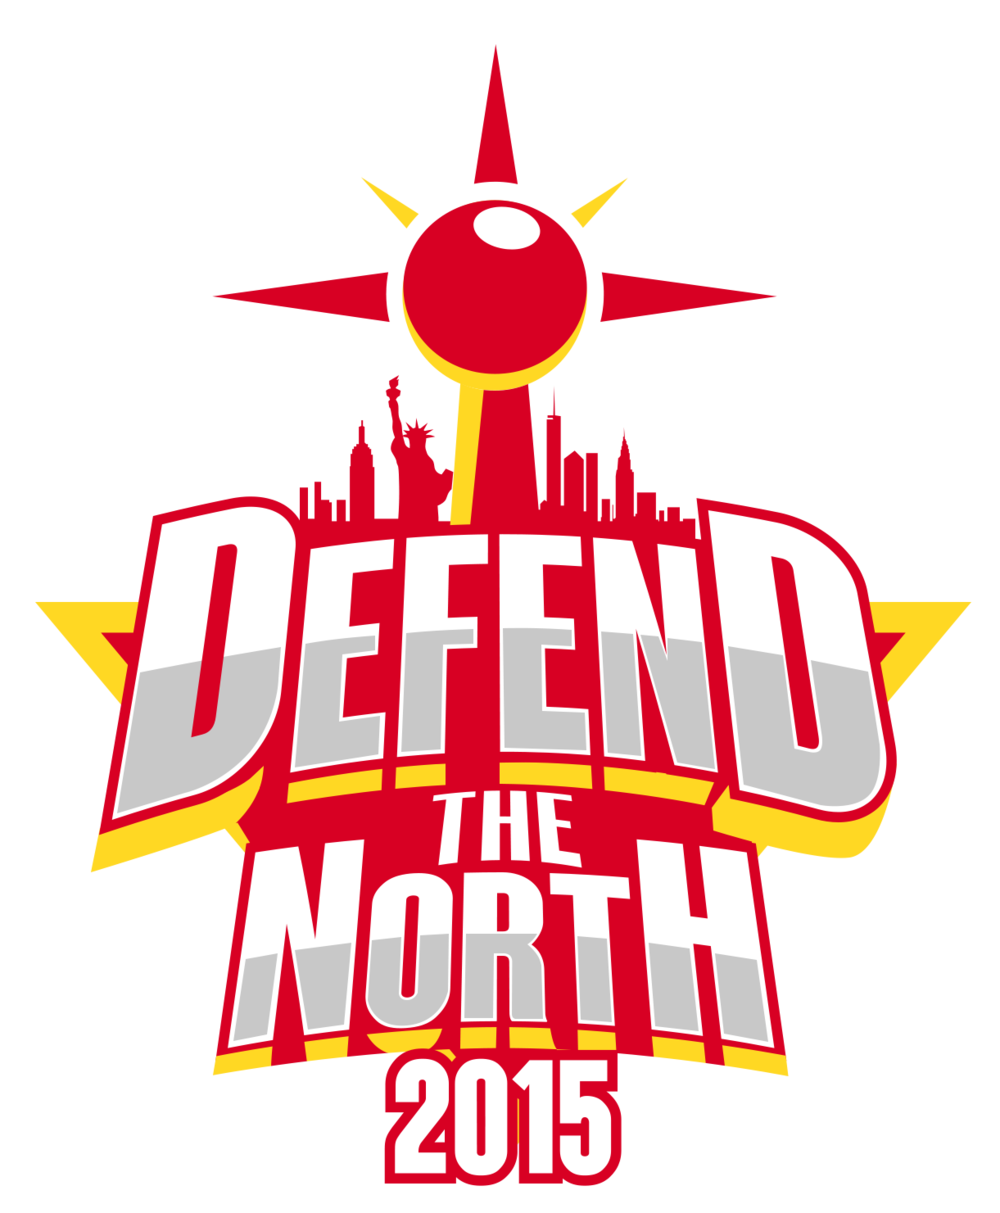 Defend-The-North-42-e1423953871758.png